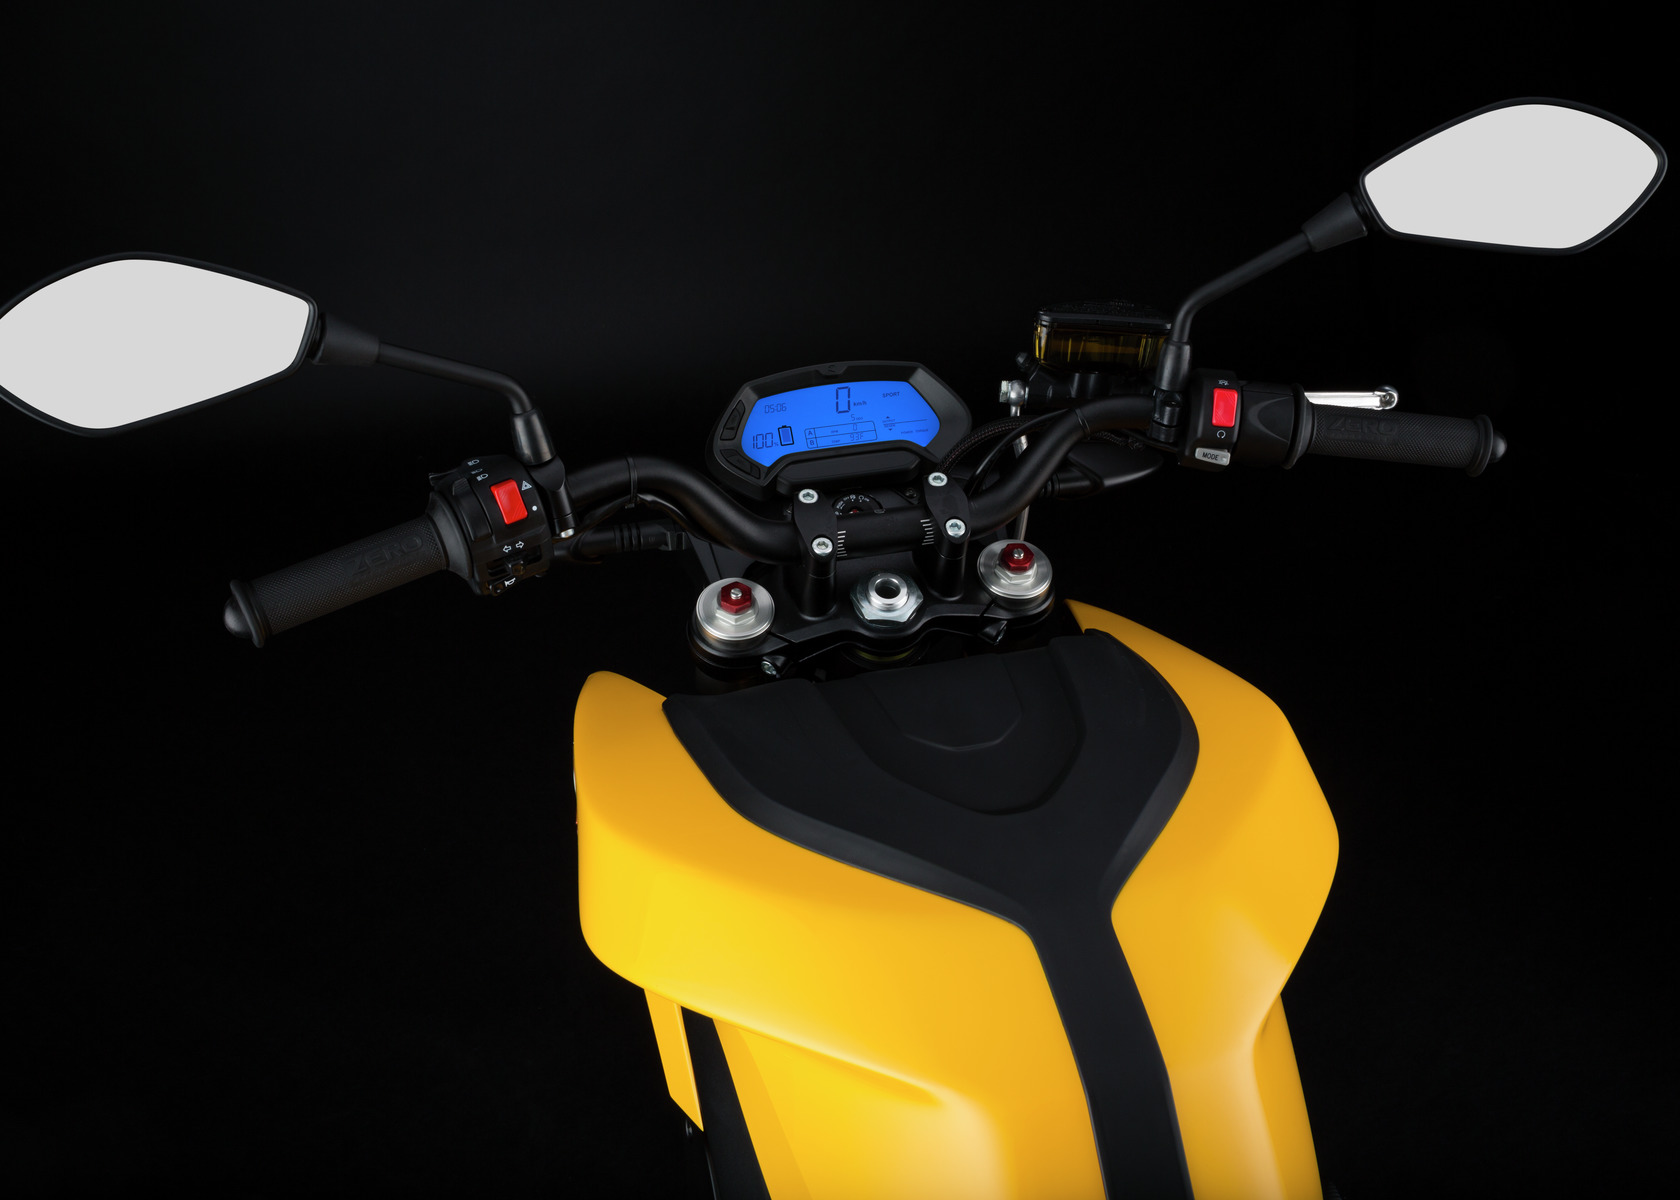 2016 Zero S Electric Motorcycle: Handlebars, Dash and Controls